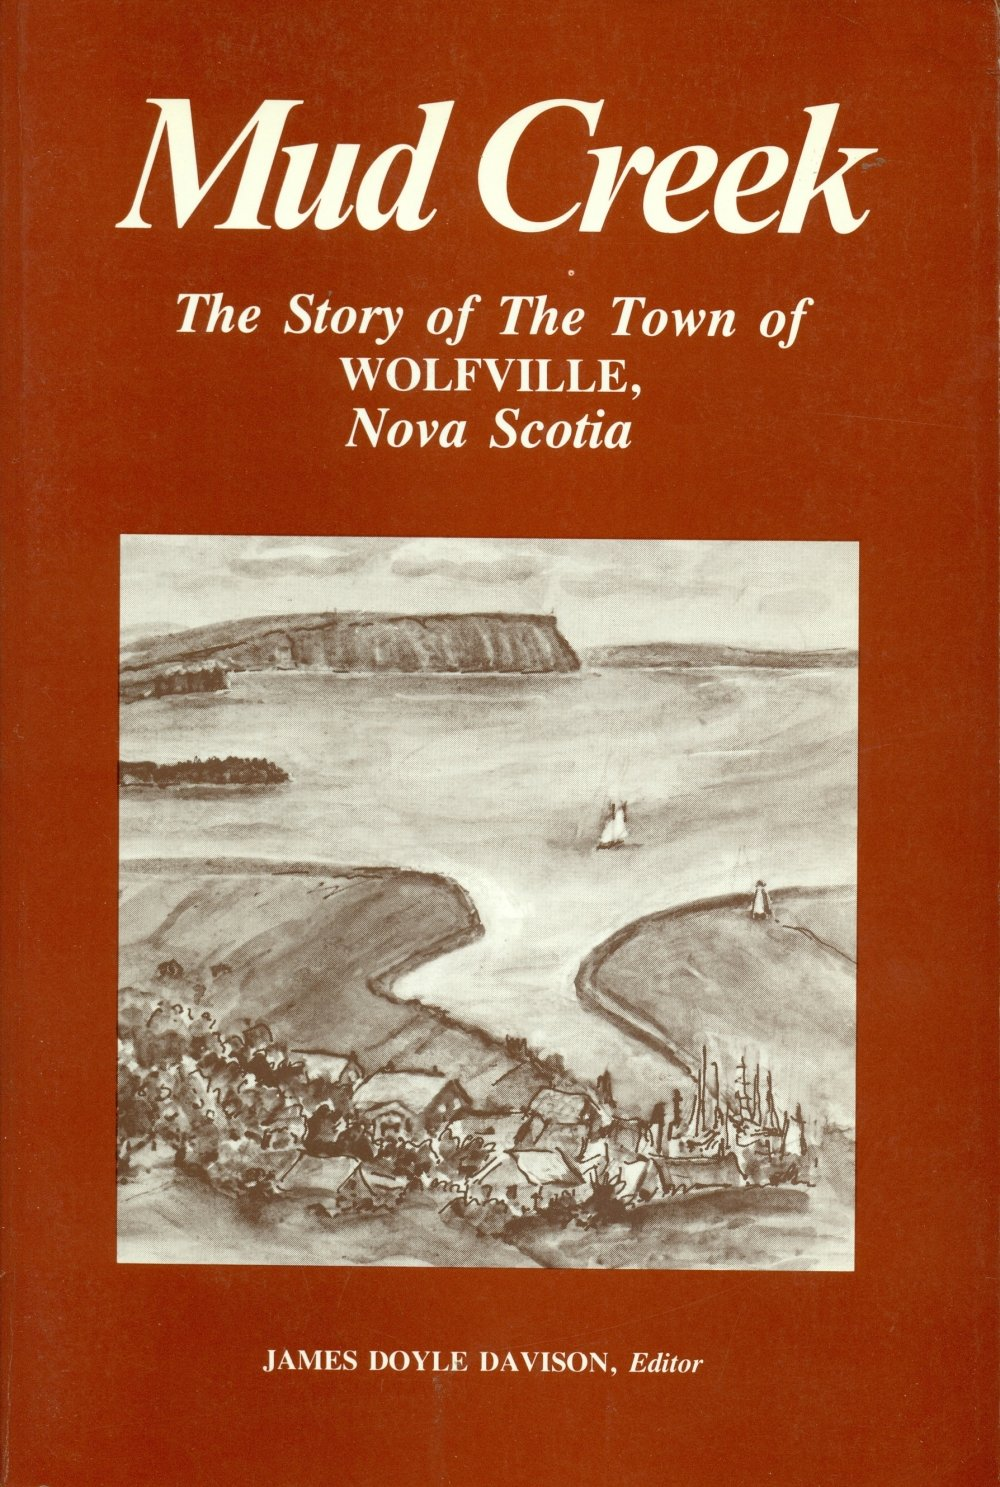 Mud creek the story of the town of wolfville nova scotia james mud creek the story of the town of wolfville nova scotia james doyle davison 9780969171904 books amazon aiddatafo Gallery